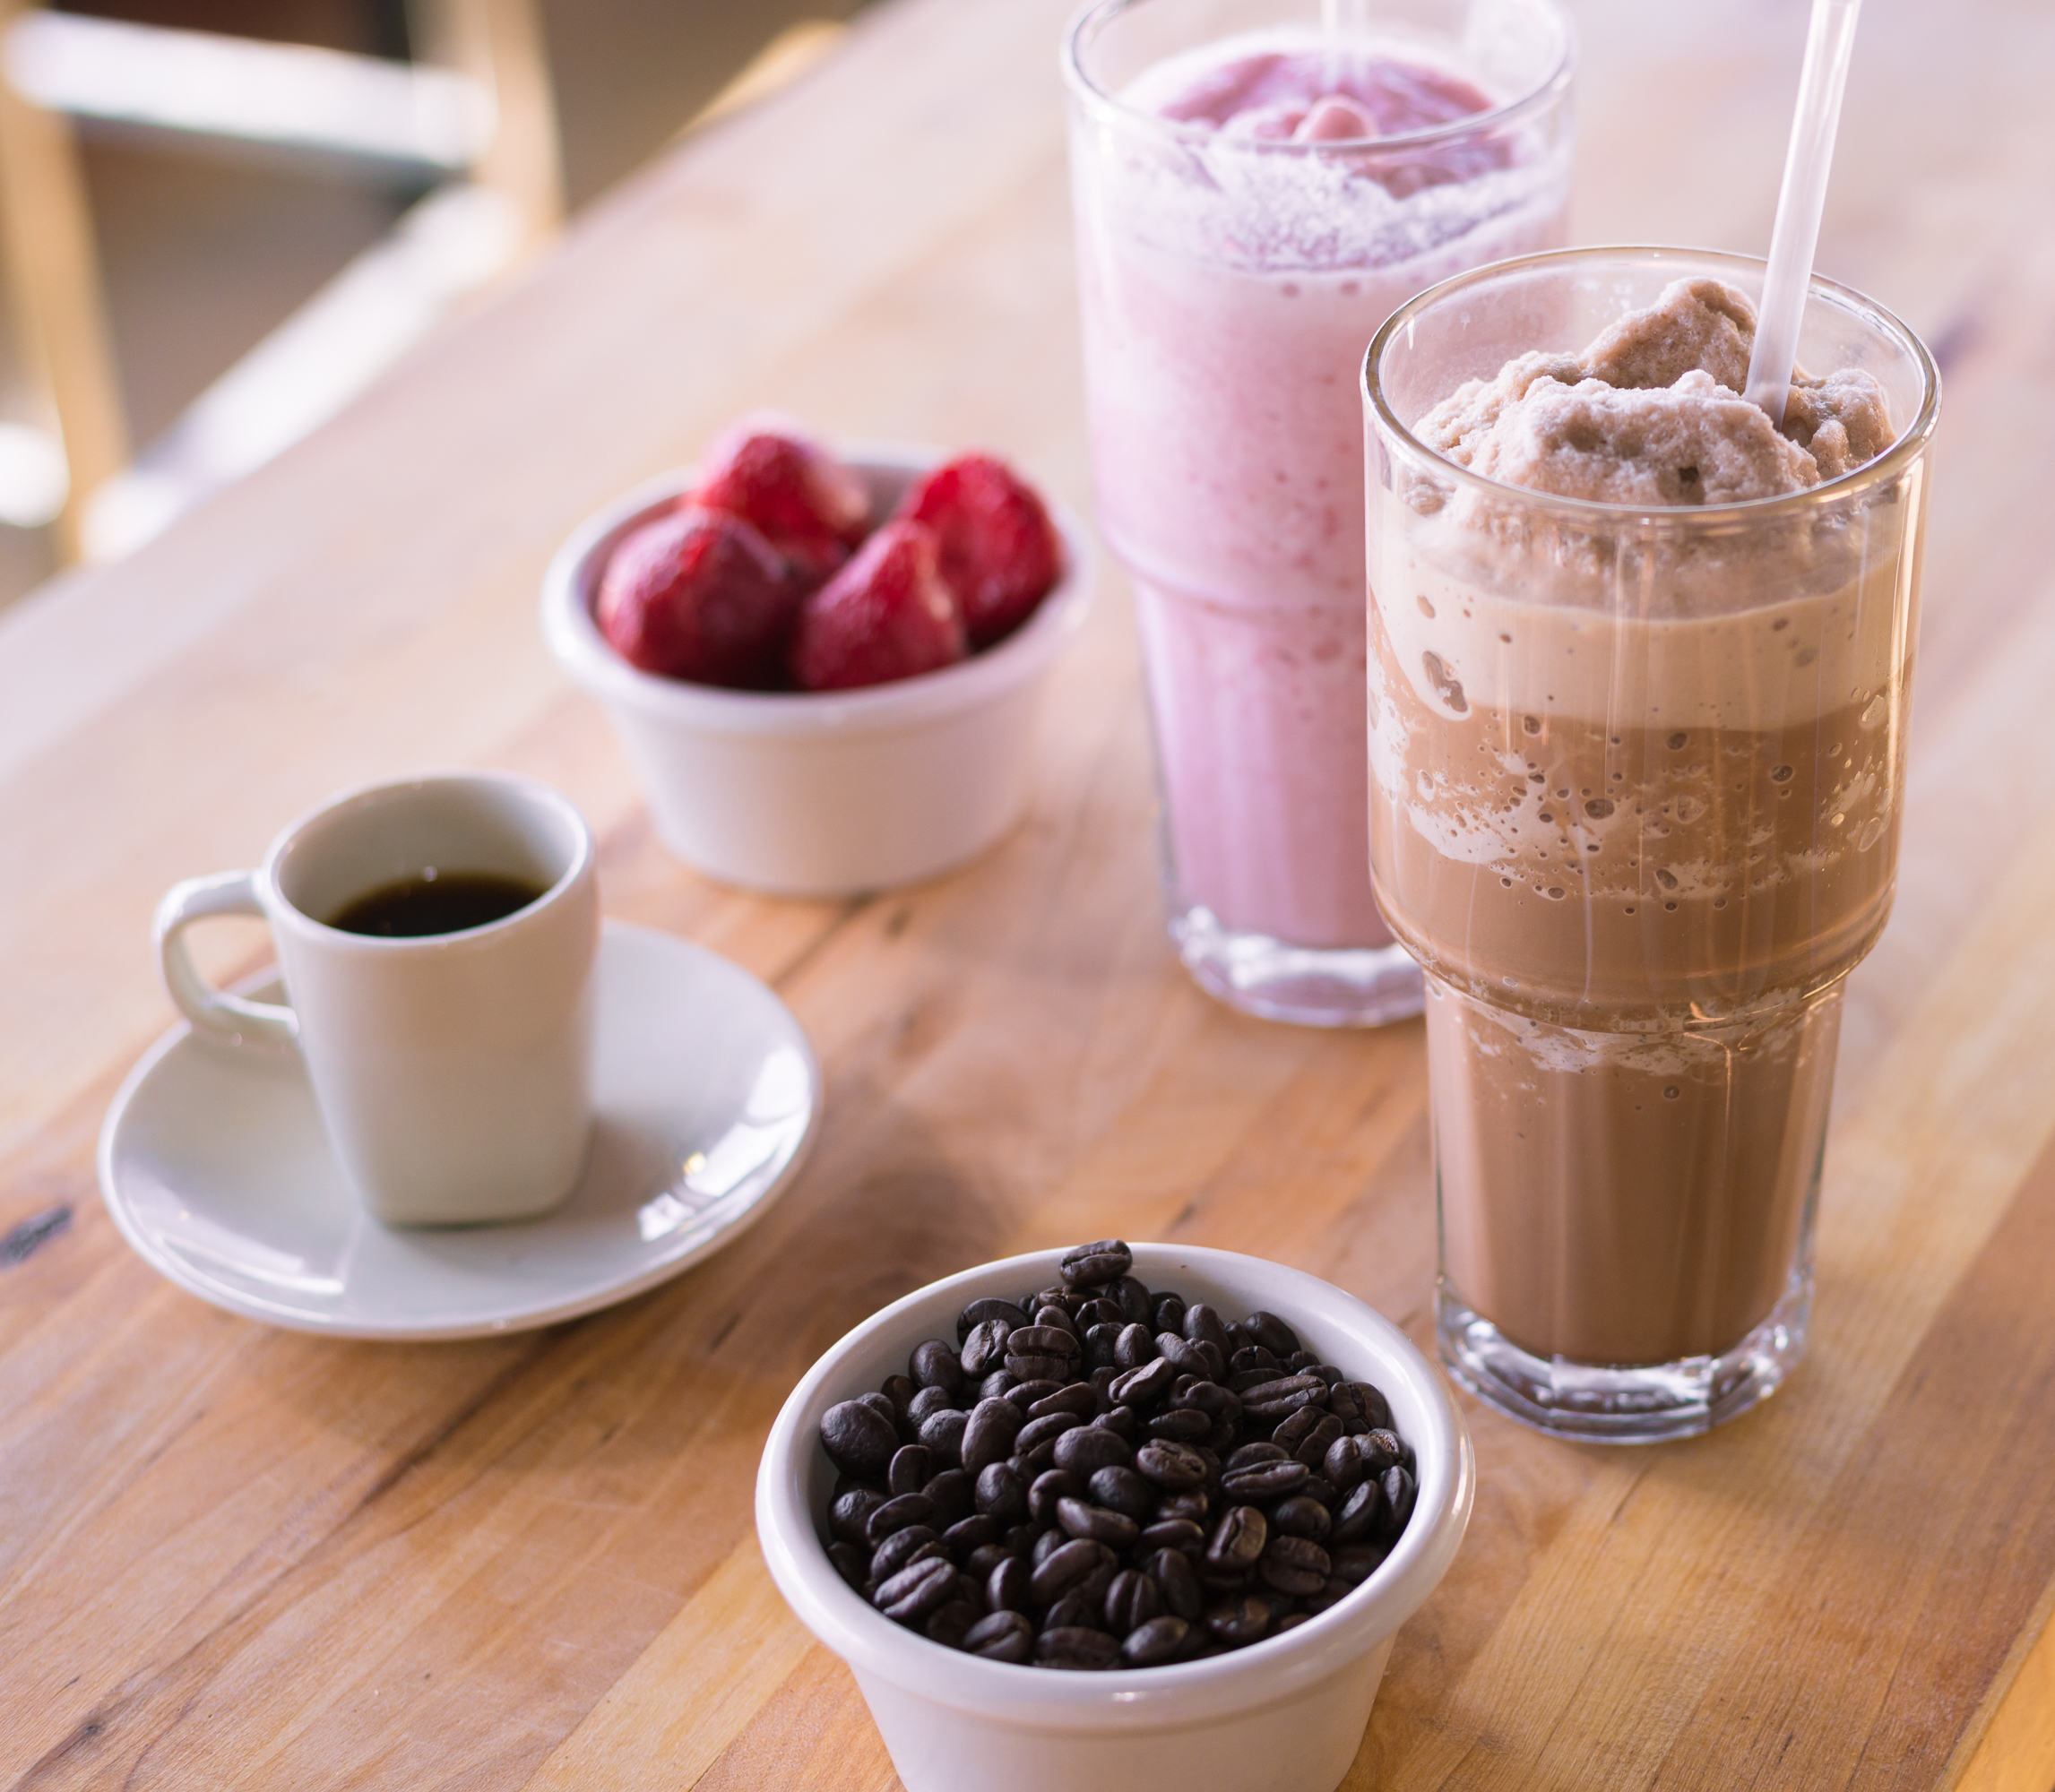 Strawberry Shake and Espresso Shake